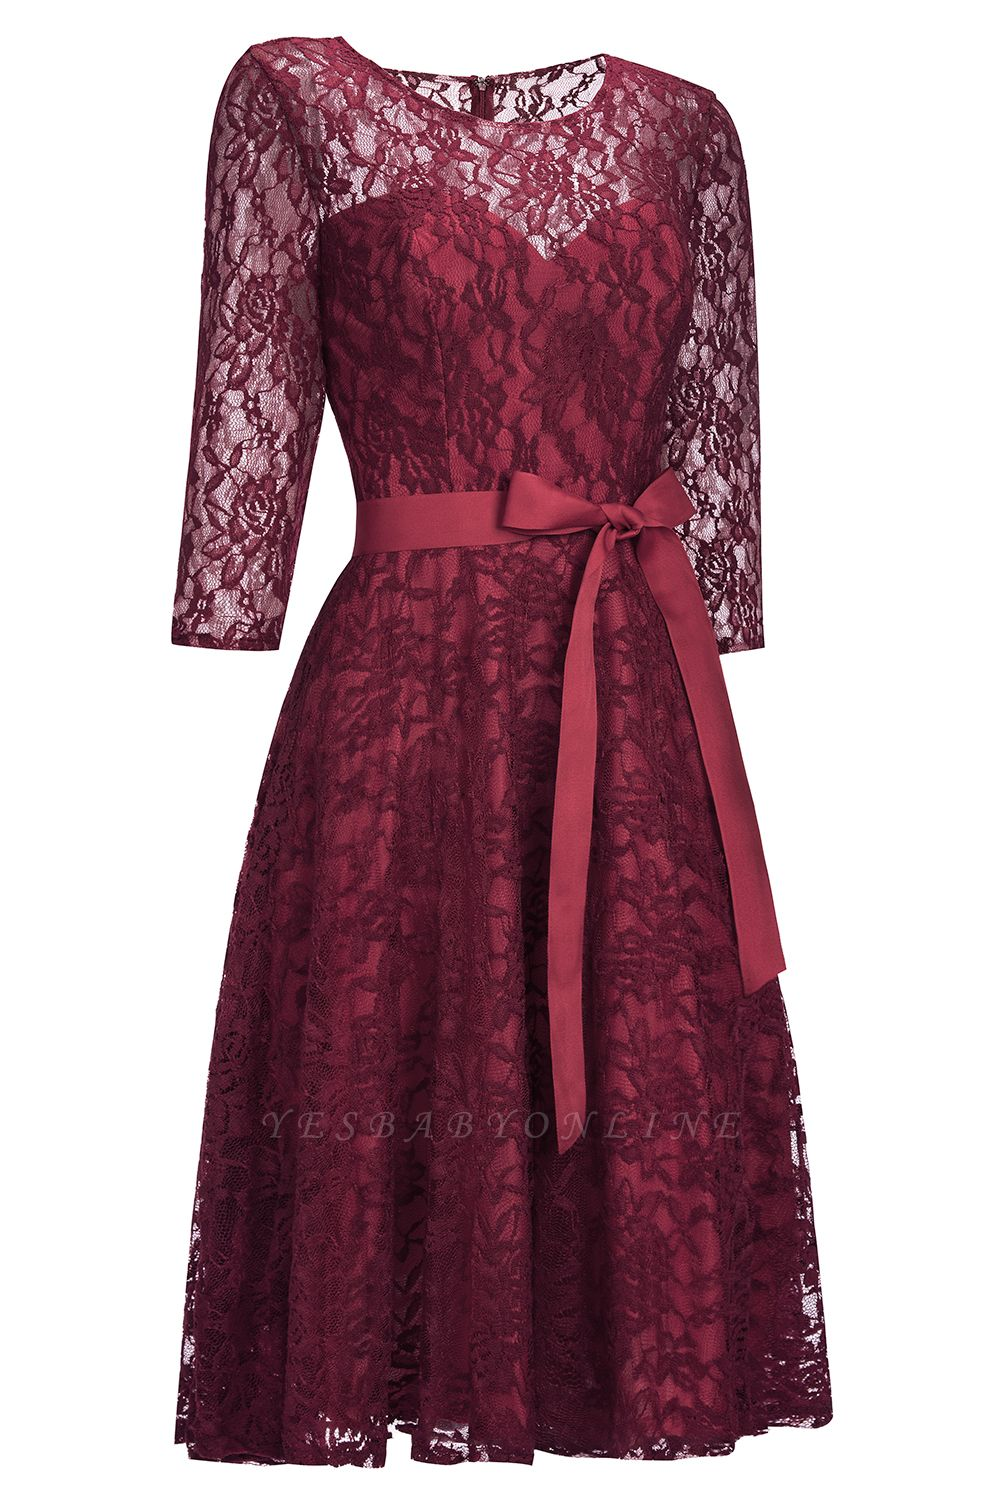 Cheap Vintage A-line Burgundy Lace Dress with Sleeves in Stock